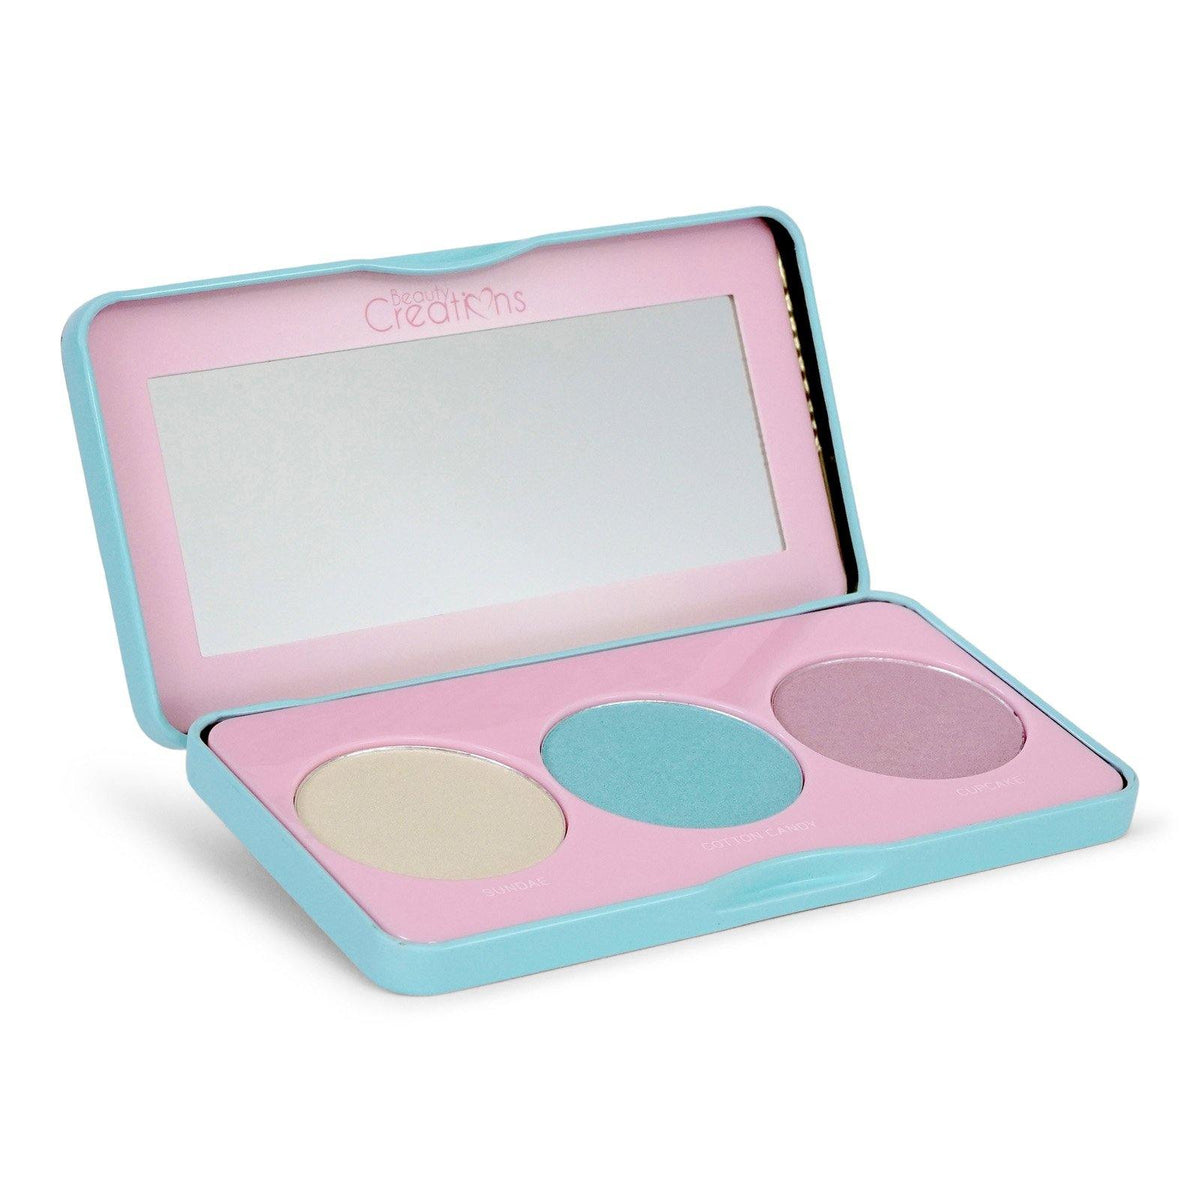 BEAUTY CREATIONS | Sweet Glow Highlighter Palette w/ 3 Shades (Case of 12)